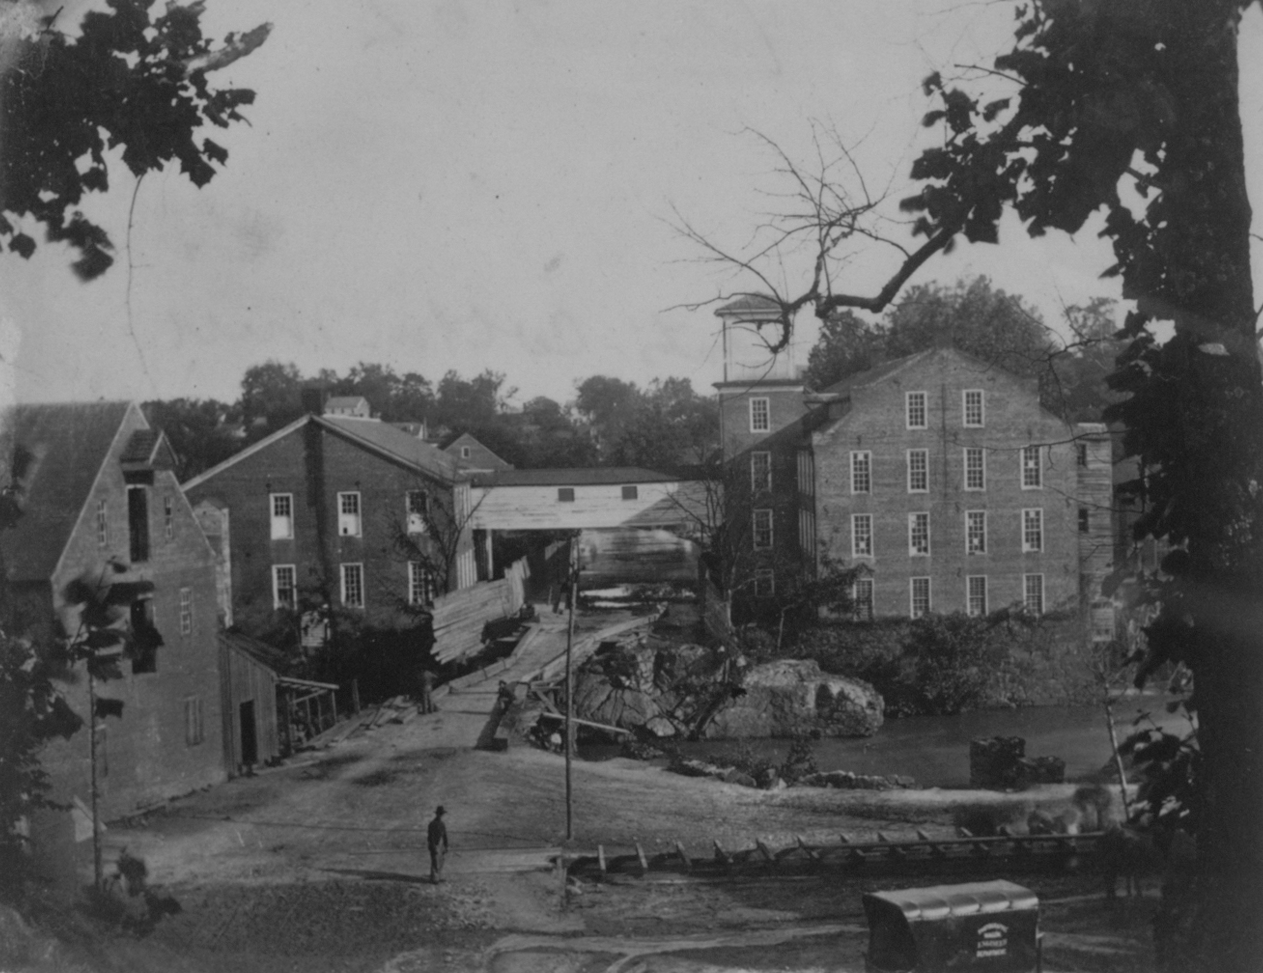 Merchants Cotton Mill, ca. 1861-1865 (Gilder Lehrman Institute)